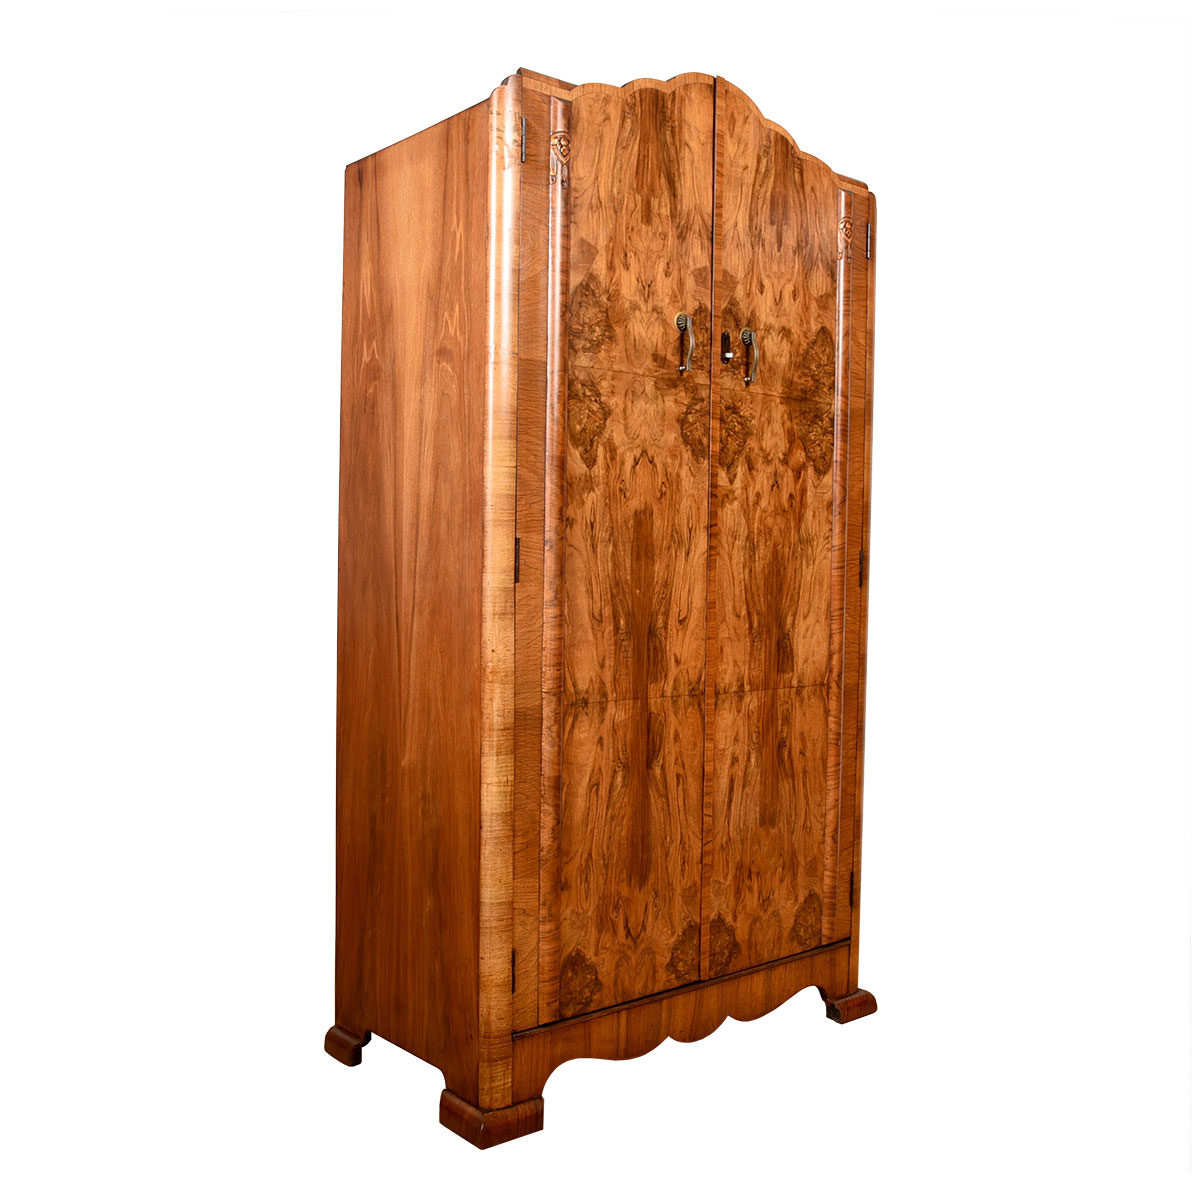 European Burled Wood Multifunctional Armoire / Storage Cabinet / Chest